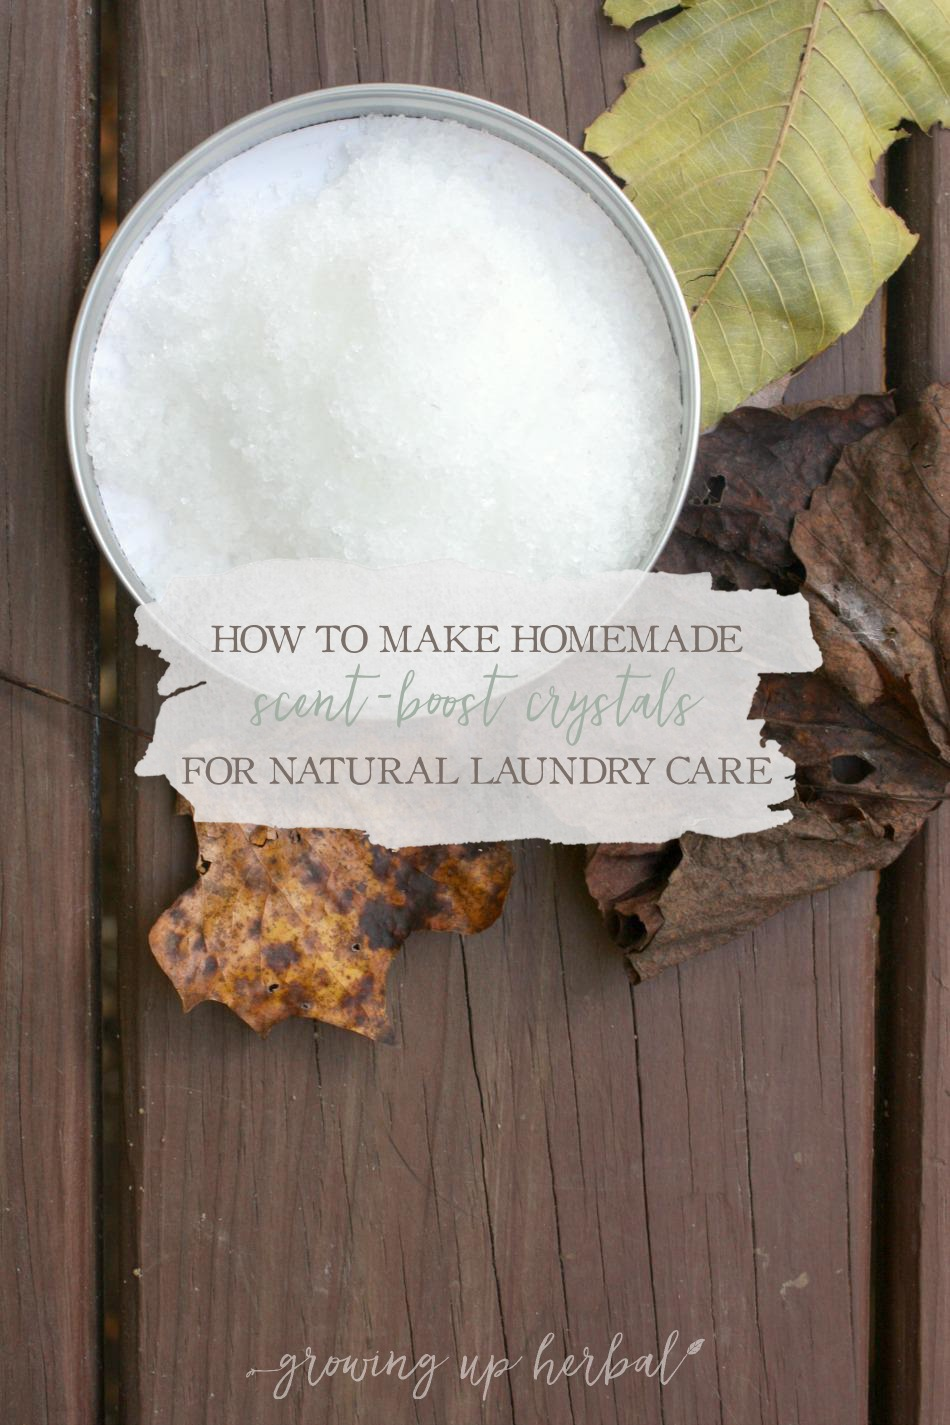 How To Make Homemade Scent Boost Crystals For Natural